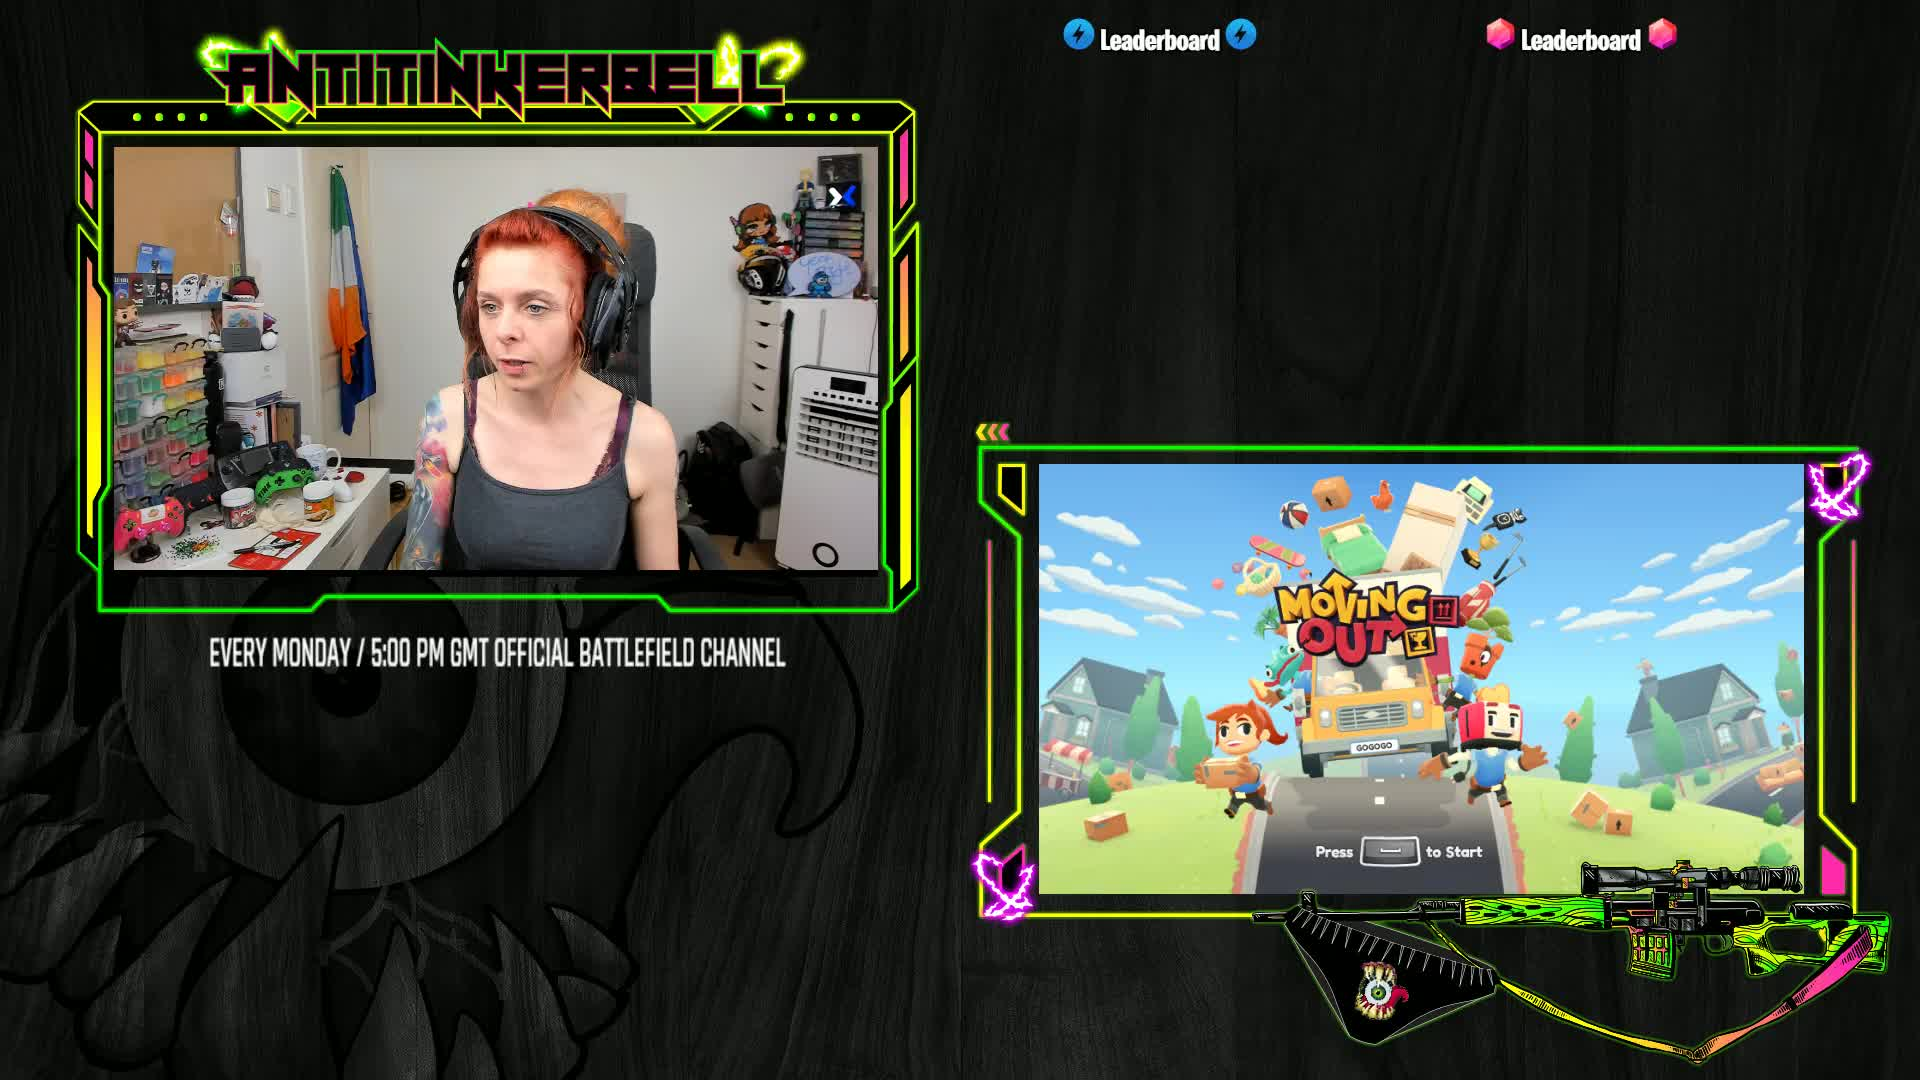 Moving out w/ Dontwatchmeplay & Senpai | Irish Mixer Partner | @Antitinkerbell